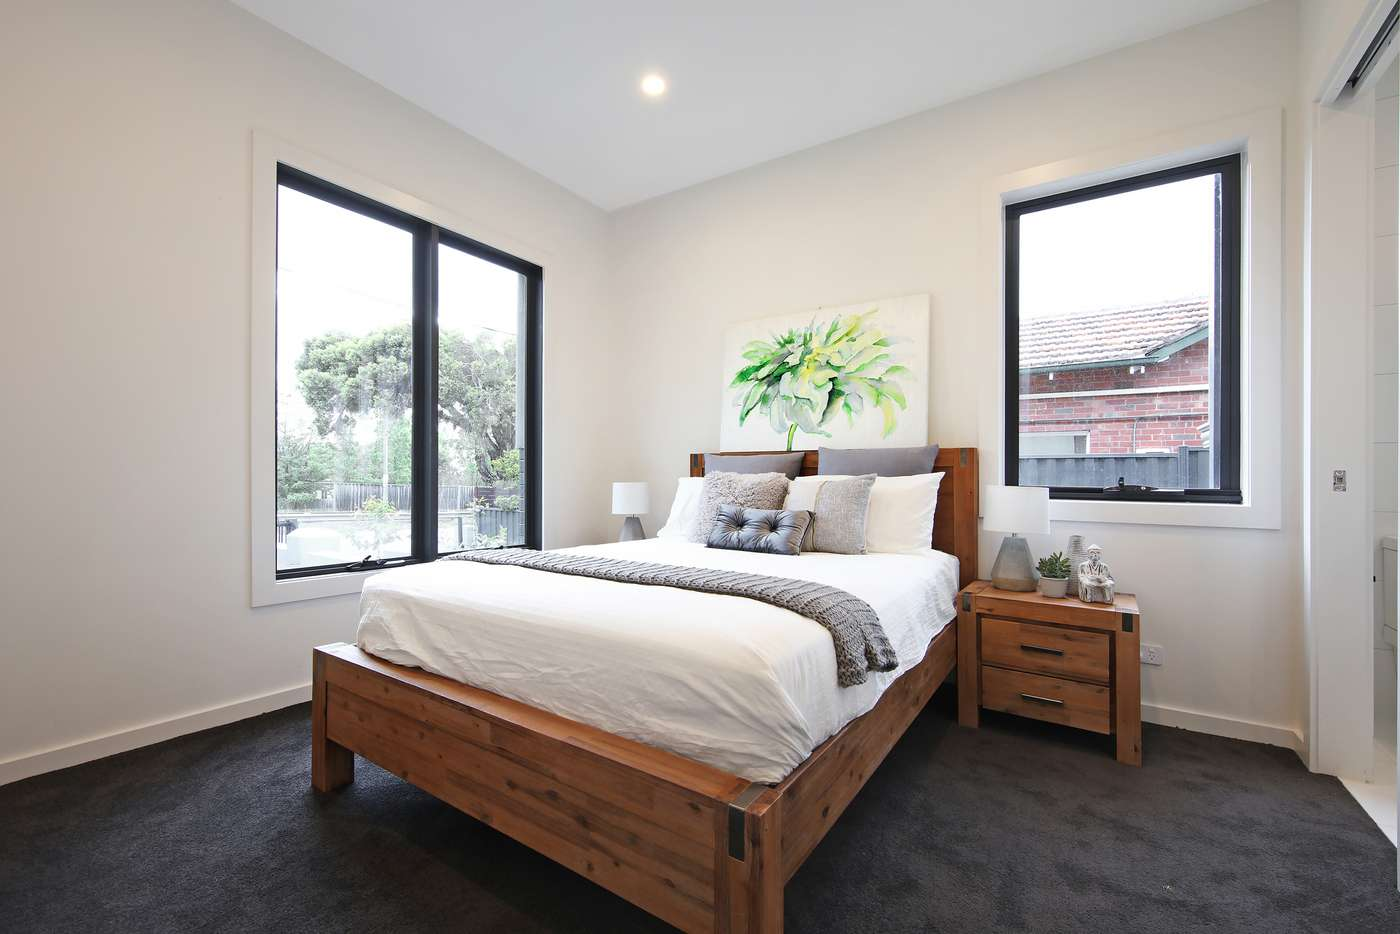 Sixth view of Homely house listing, 1/379 High Street, Ashburton VIC 3147